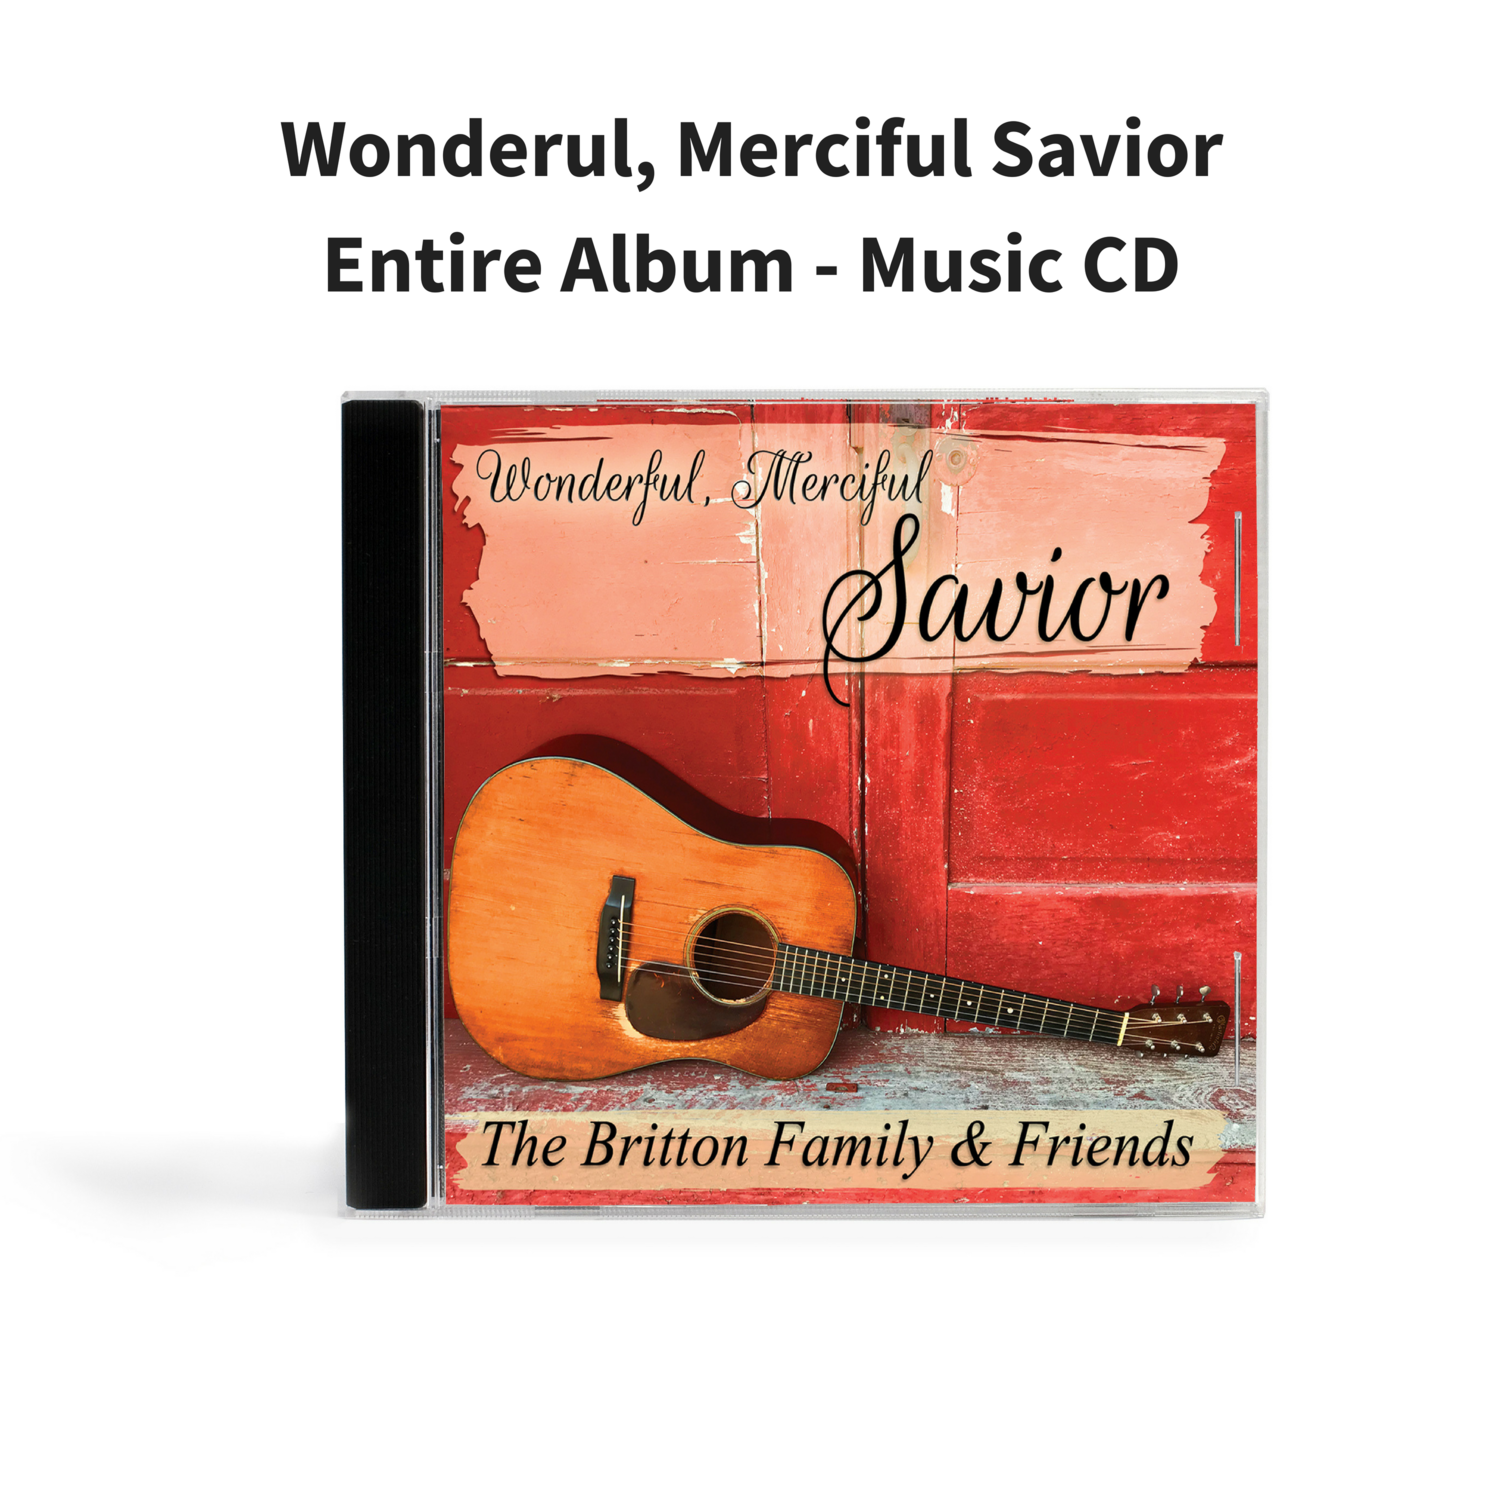 Wonderfull, Merciful Savior - Music CD